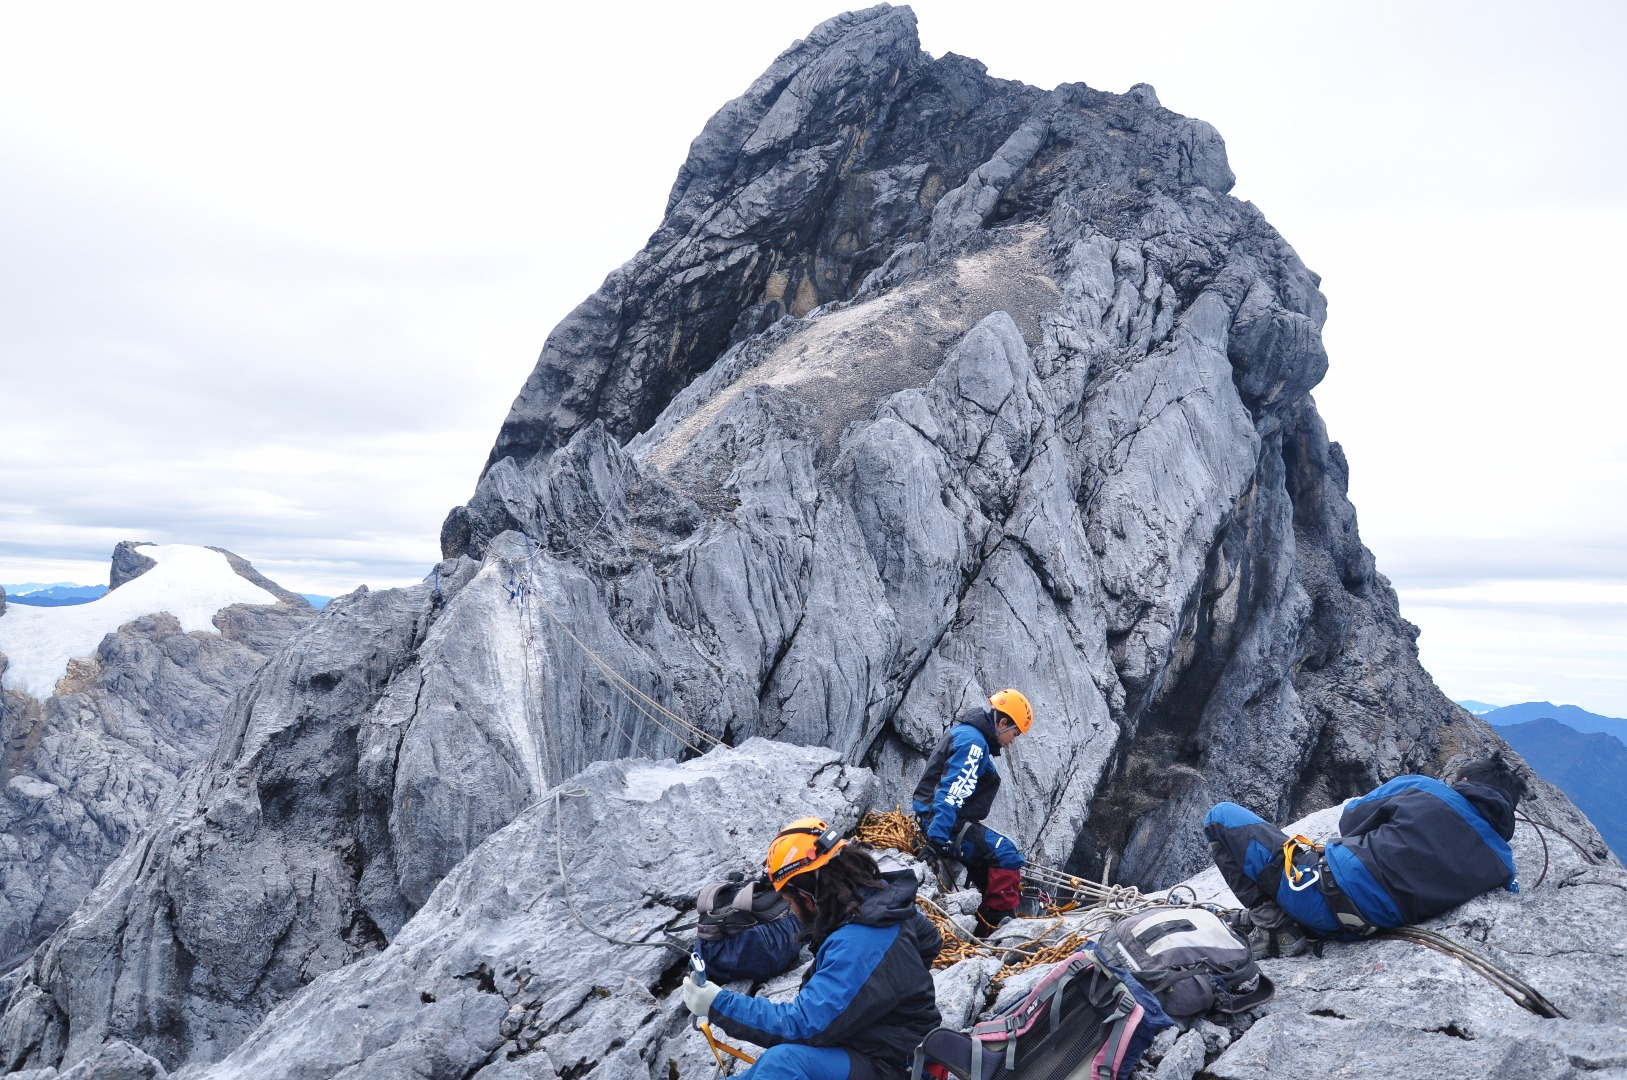 Puncak Jaya Carstensz Pyramid Expedition Adventure